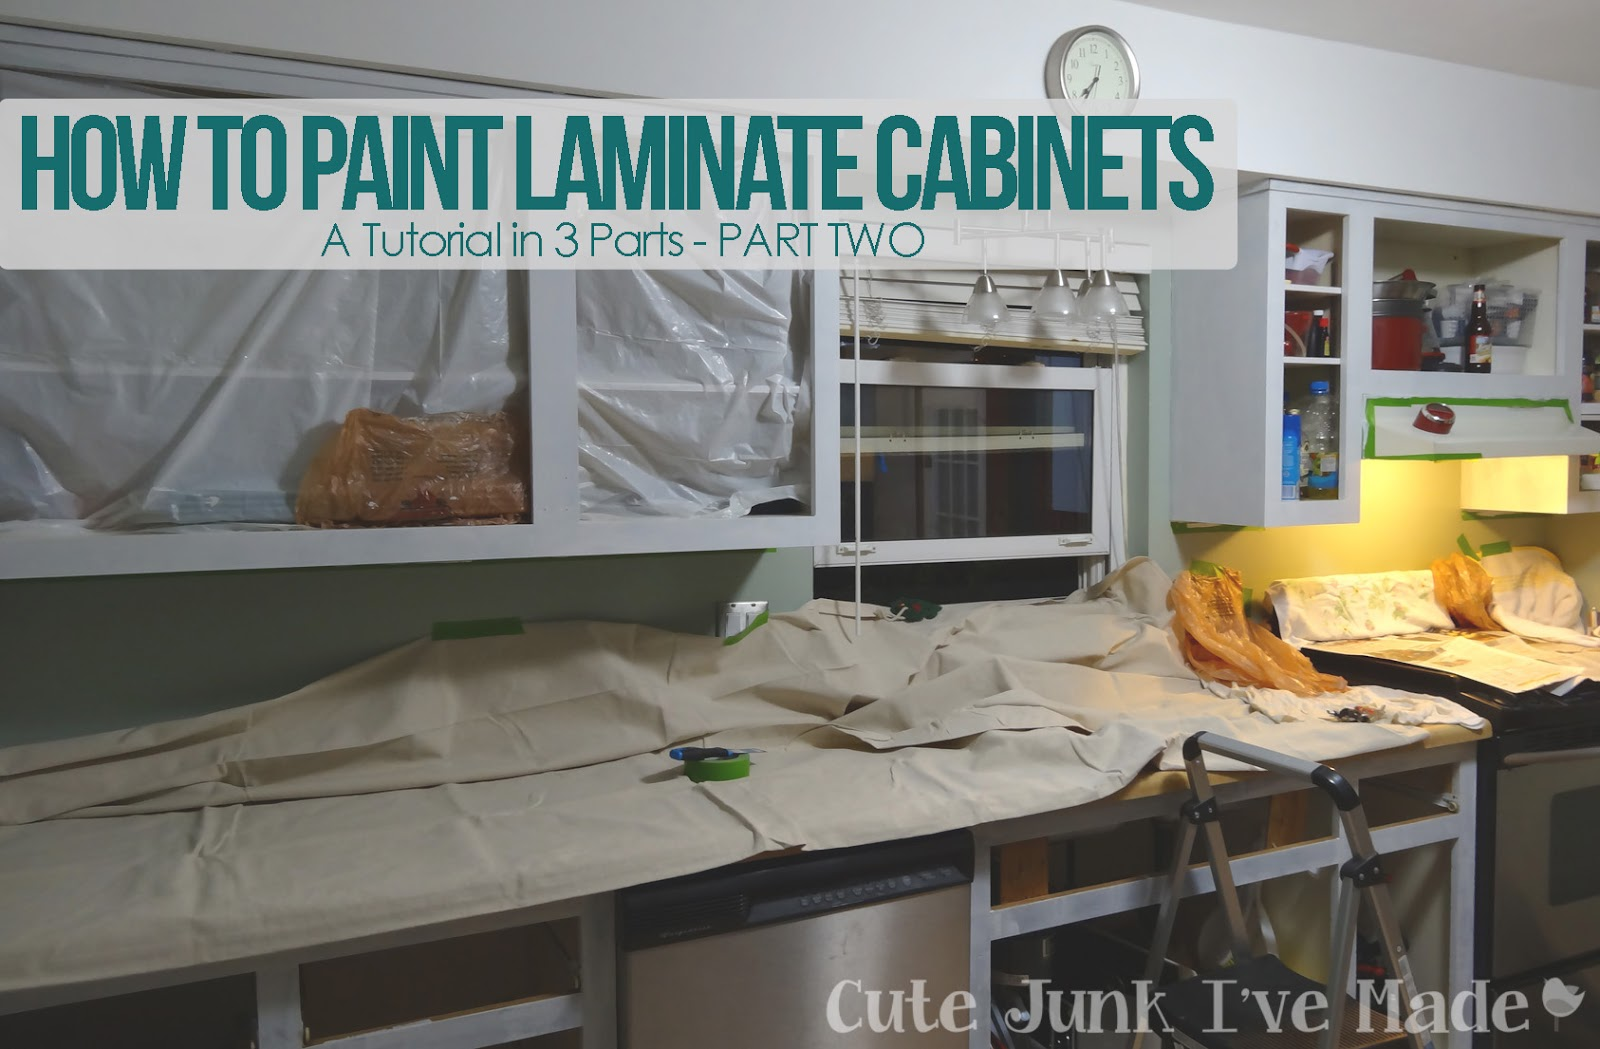 Paint For Laminate Cabinets Cute Junk Ive Made How To Paint Laminate Cabinets Part Two